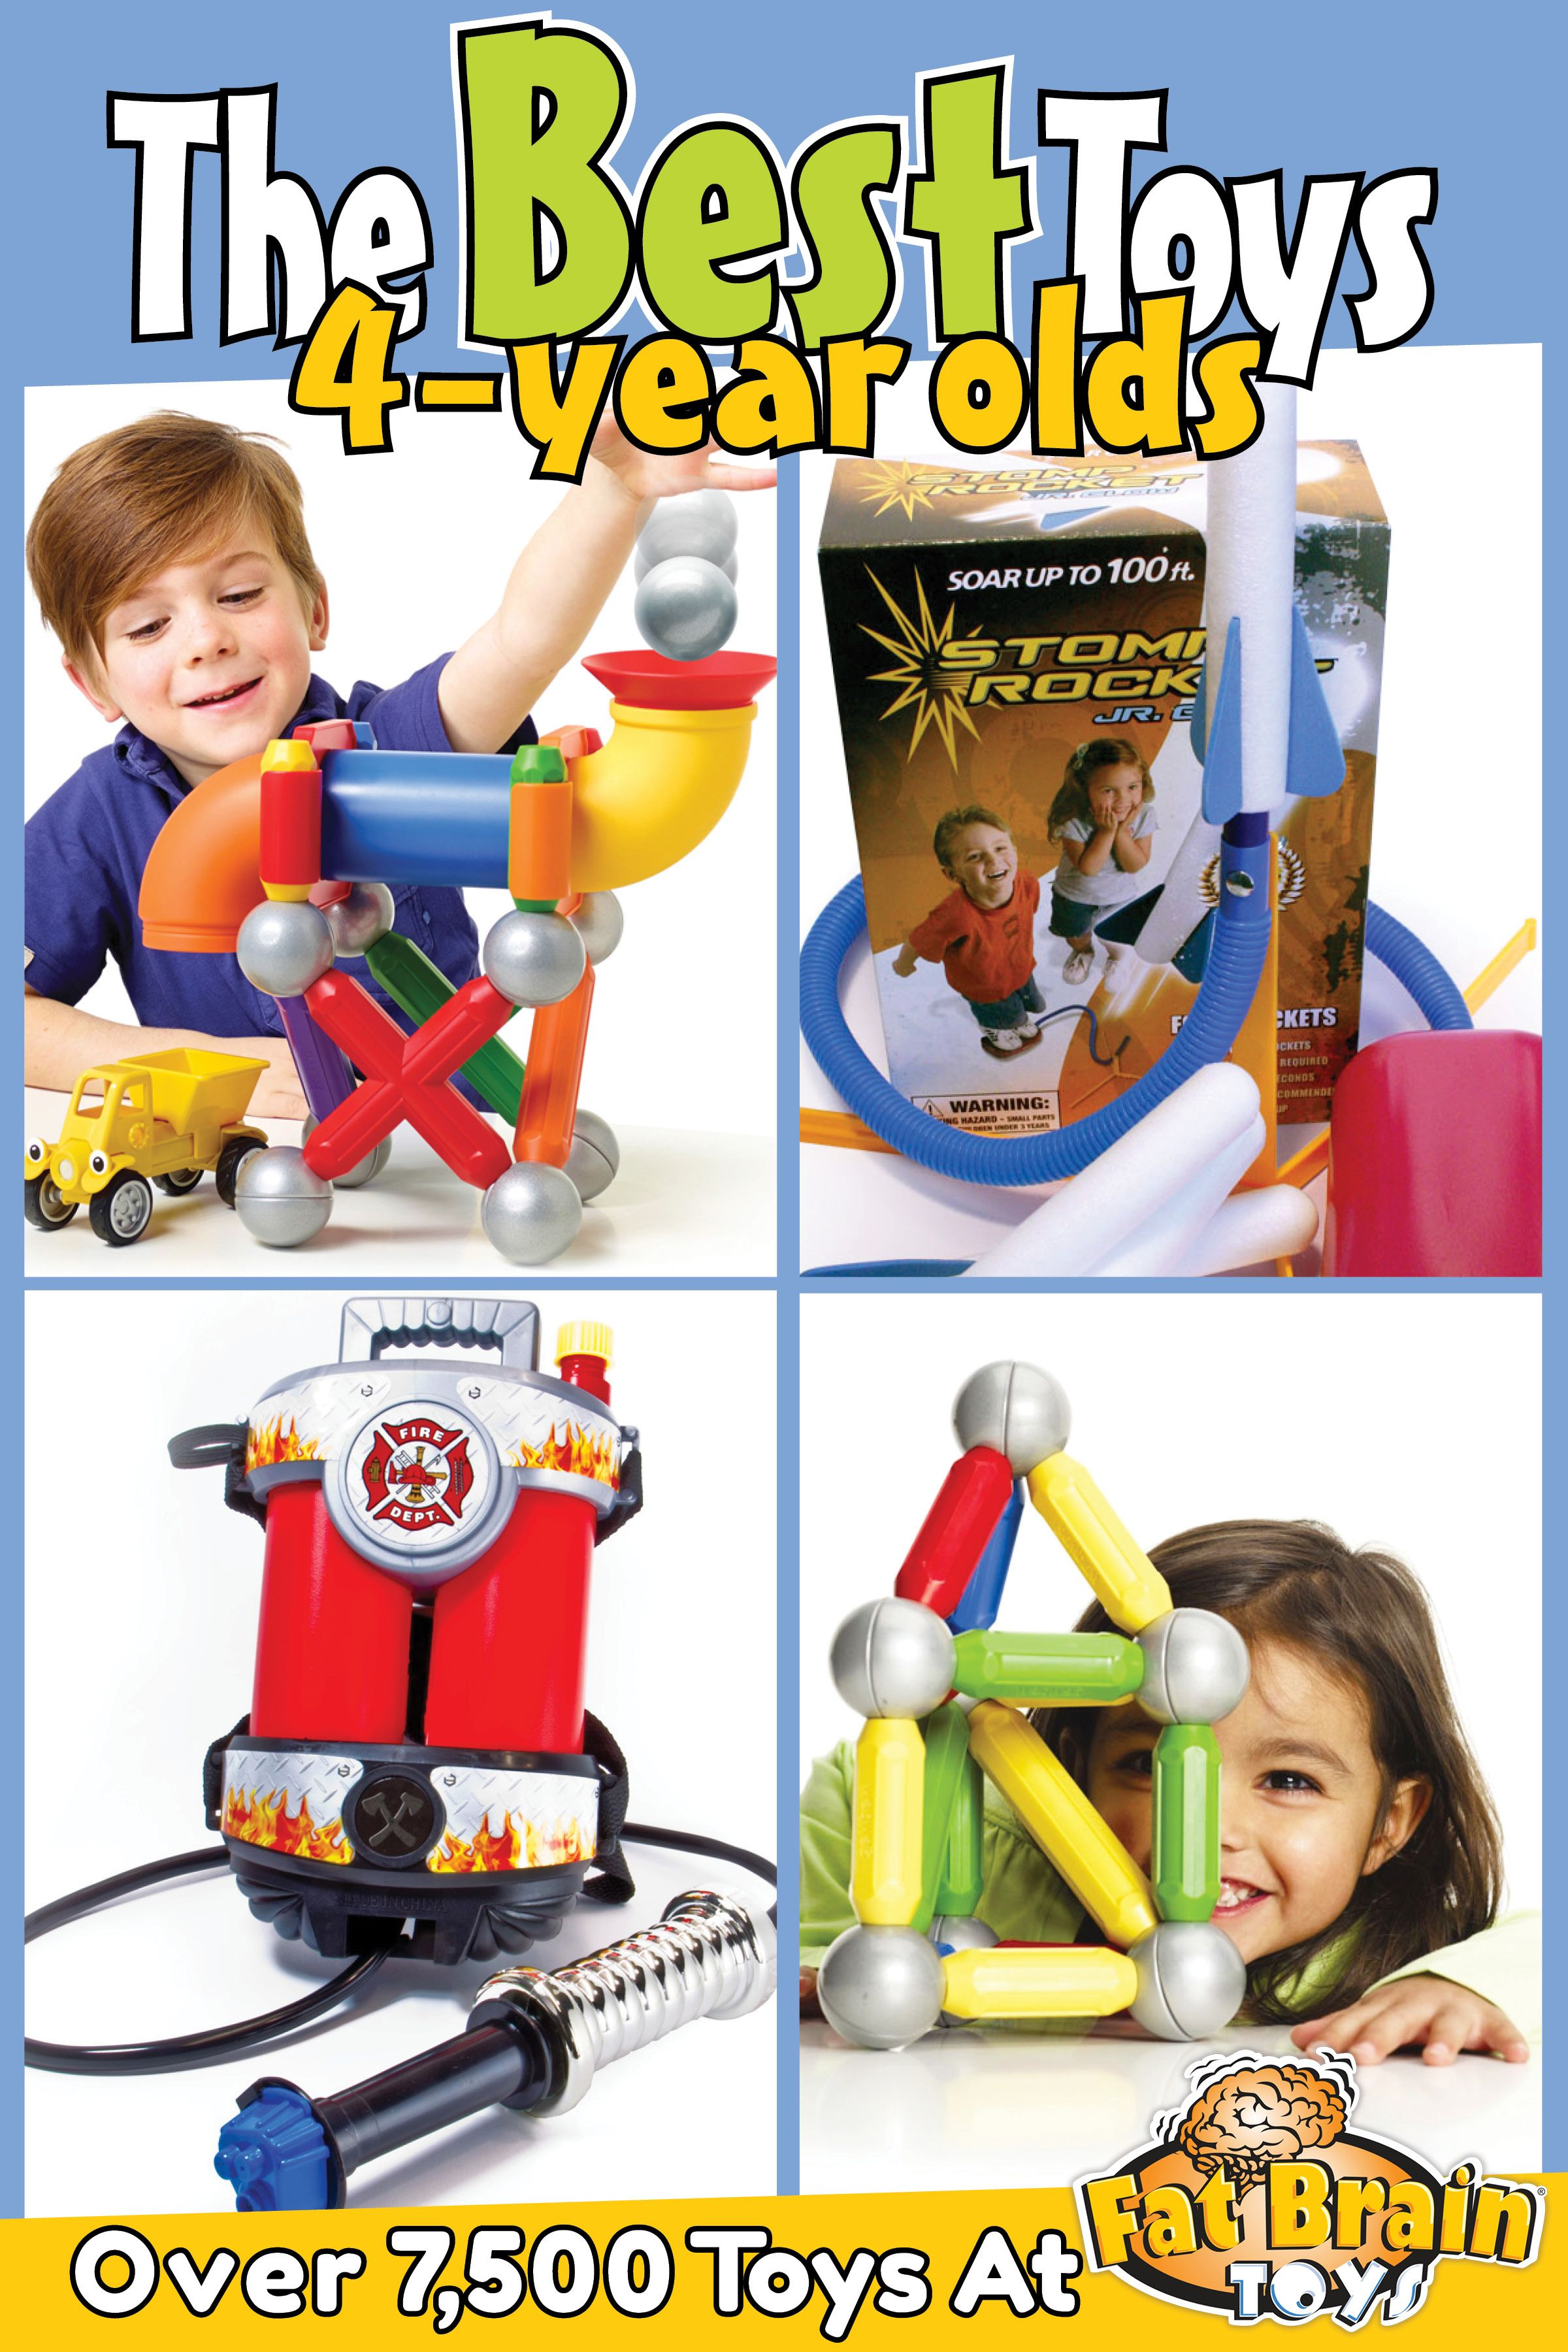 The Best Toys Games And Gifts On The Planet For 4 Year